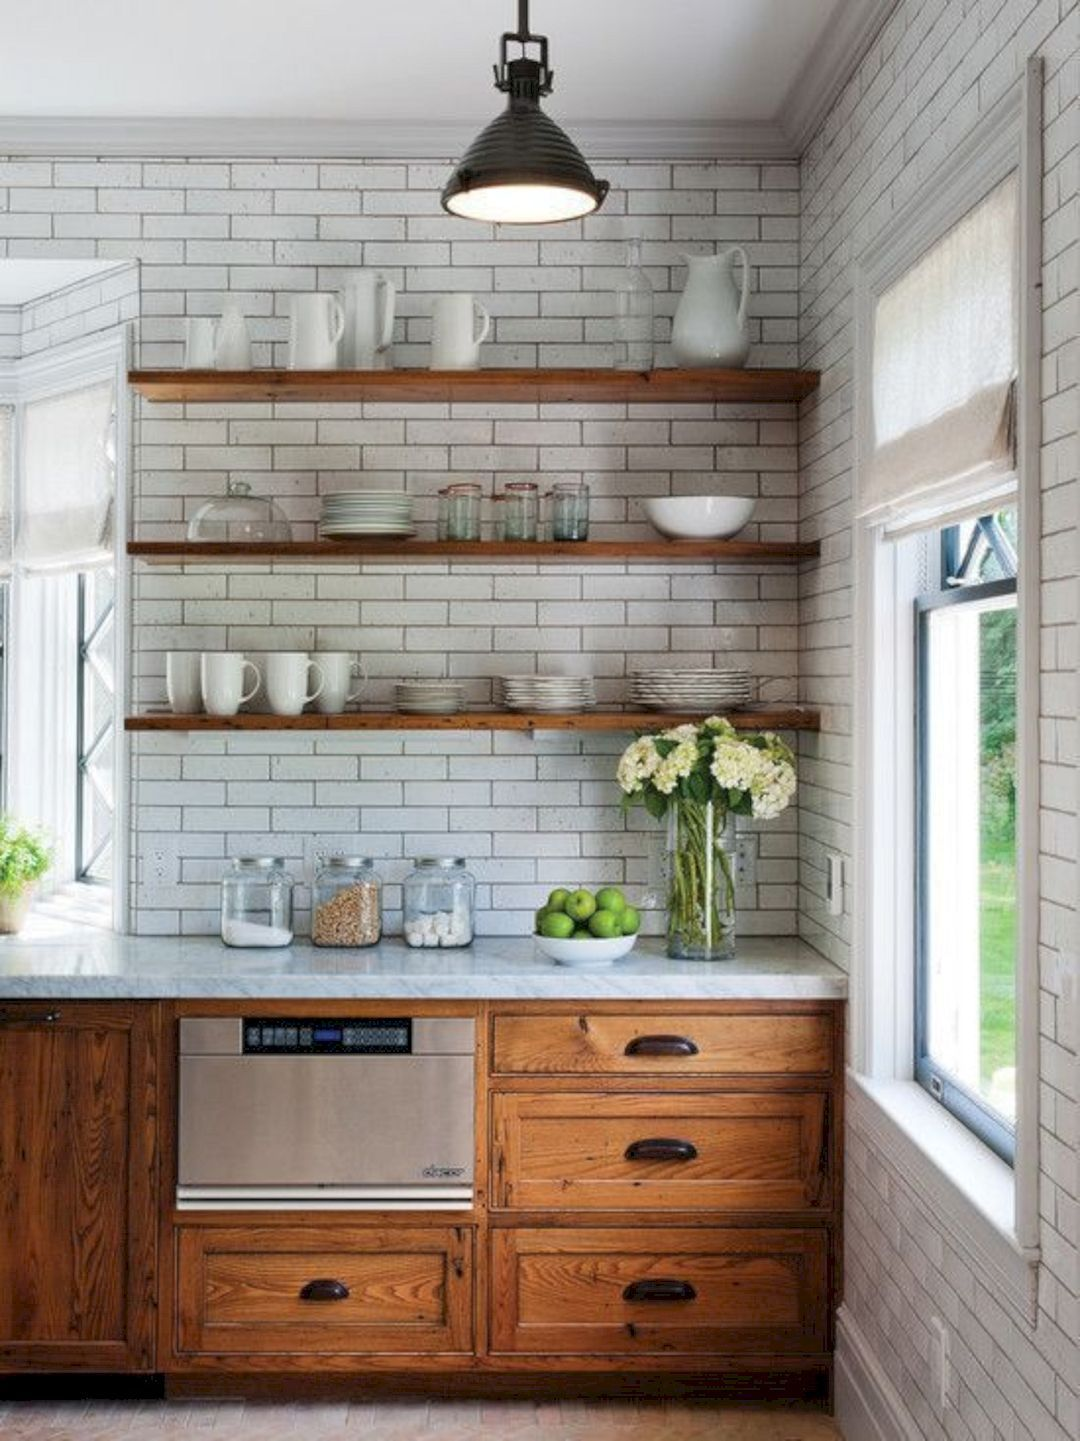 16 Top Kitchen Renovation Ideas | Pinterest | Kitchens, Remodeling Rustic Kitchen Remodel Ideas Html on rustic wood kitchen ideas, rustic carpet ideas, rustic cabin kitchens, rustic kitchen tile ideas, rustic kitchen ceiling ideas, rustic kitchen makeover ideas, rustic red kitchen ideas, rustic kitchen decor ideas, rustic kitchen remodeling, vintage remodel ideas, rustic kitchen islands, rustic remodeled kitchens, rustic style kitchens, rustic kitchen cabinets, log cabin kitchen ideas, rustic outdoor kitchen ideas, rustic kitchen home, small rustic kitchen ideas, rustic kitchen shelf ideas, rustic kitchen cupboard ideas,